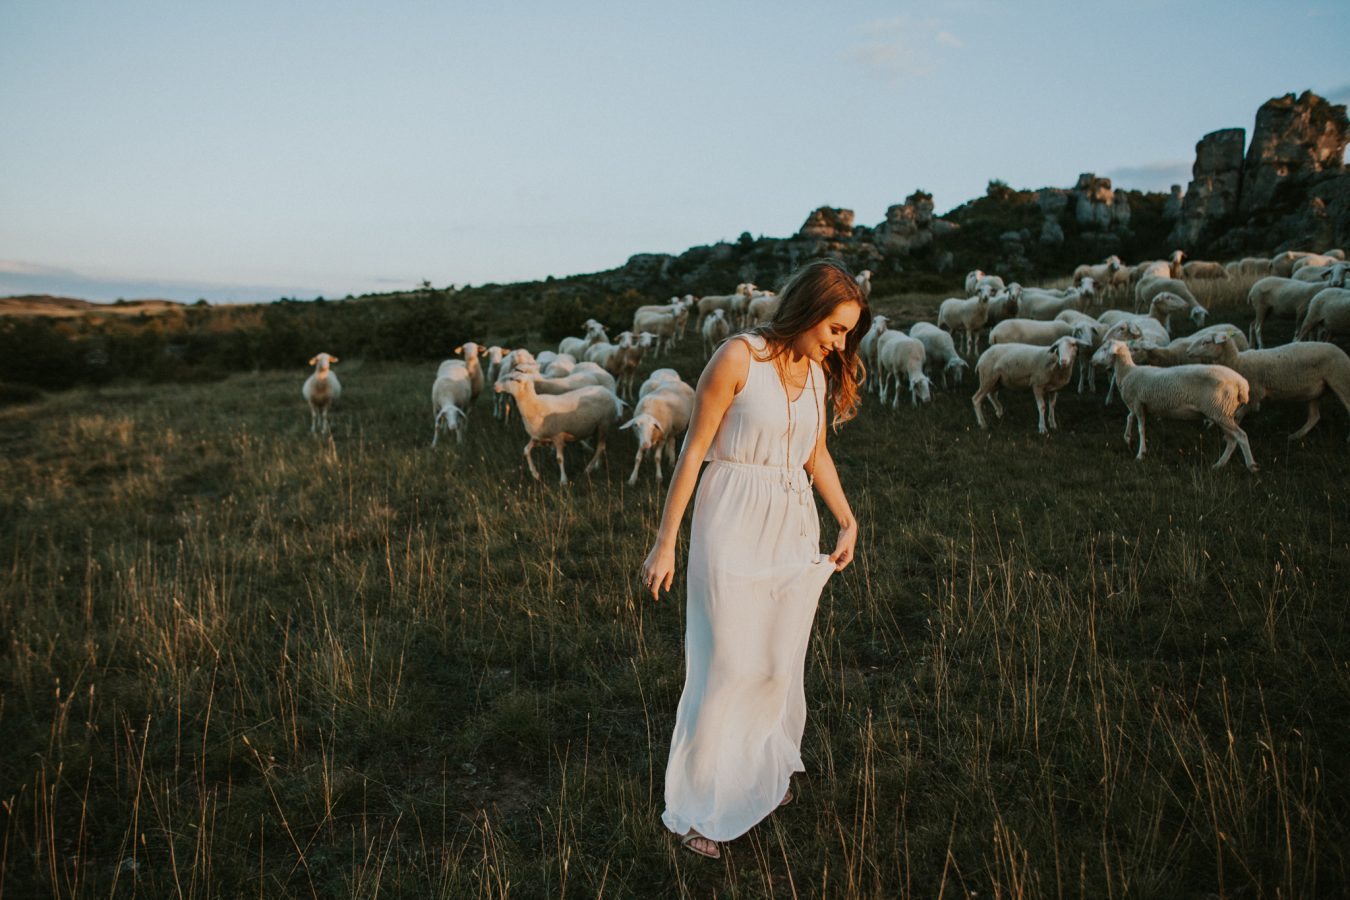 Sheep larzac culture landscape portrait